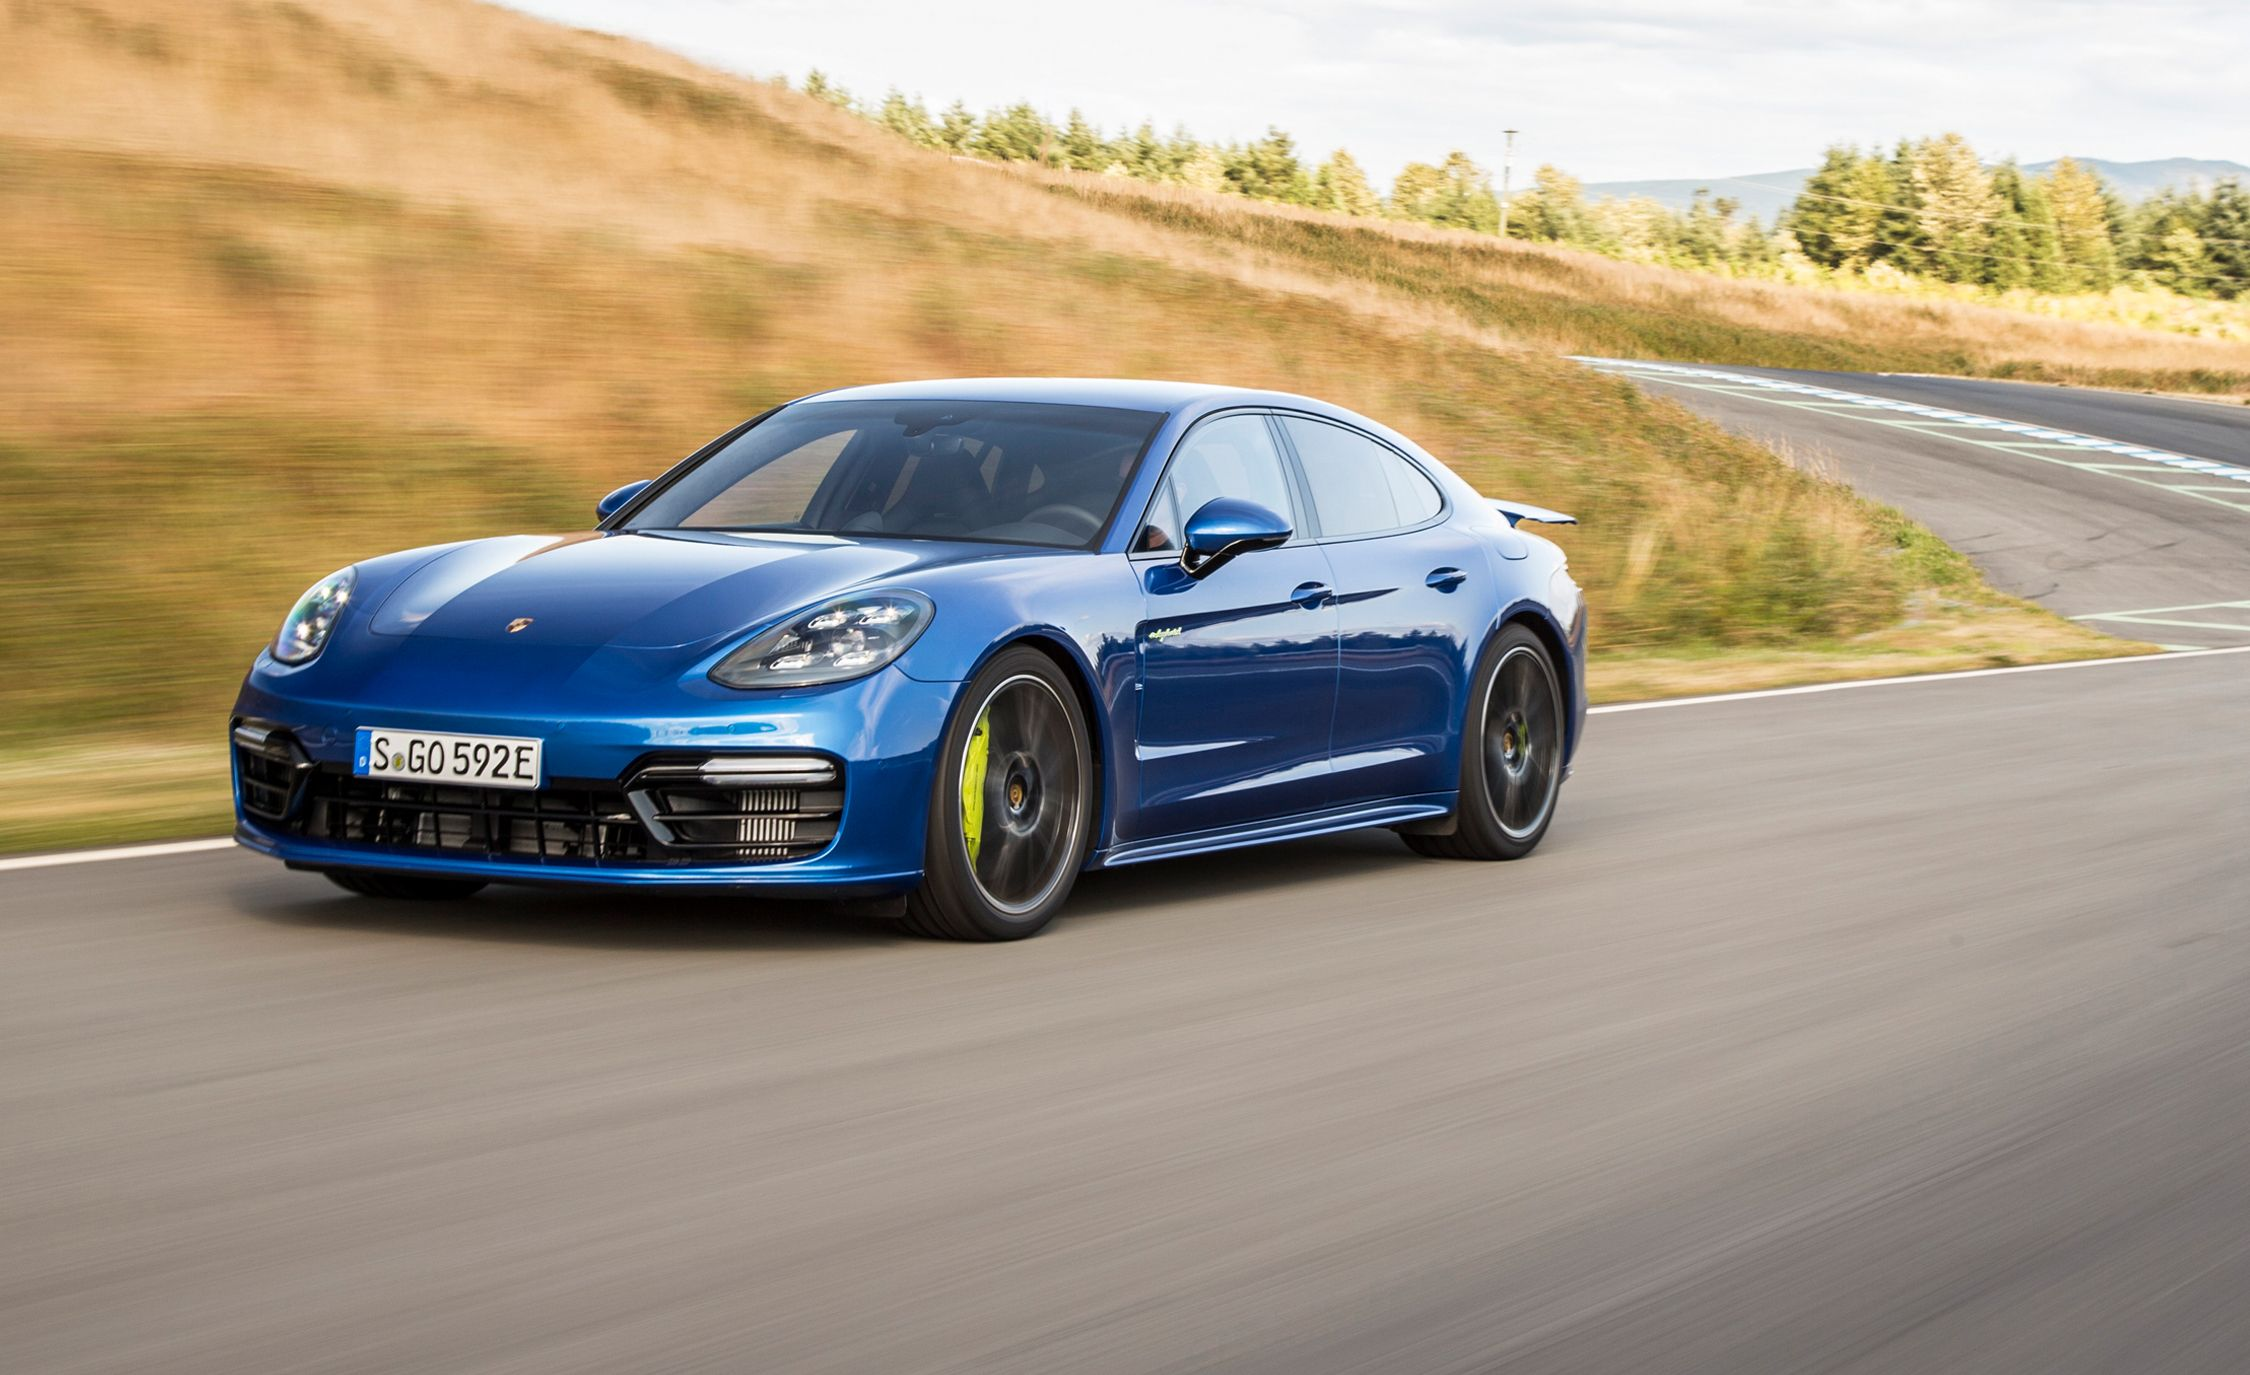 2018 porsche panamera turbo.  turbo 2018 porsche panamera turbo s ehybrid first drive  review car and driver with porsche panamera turbo 4